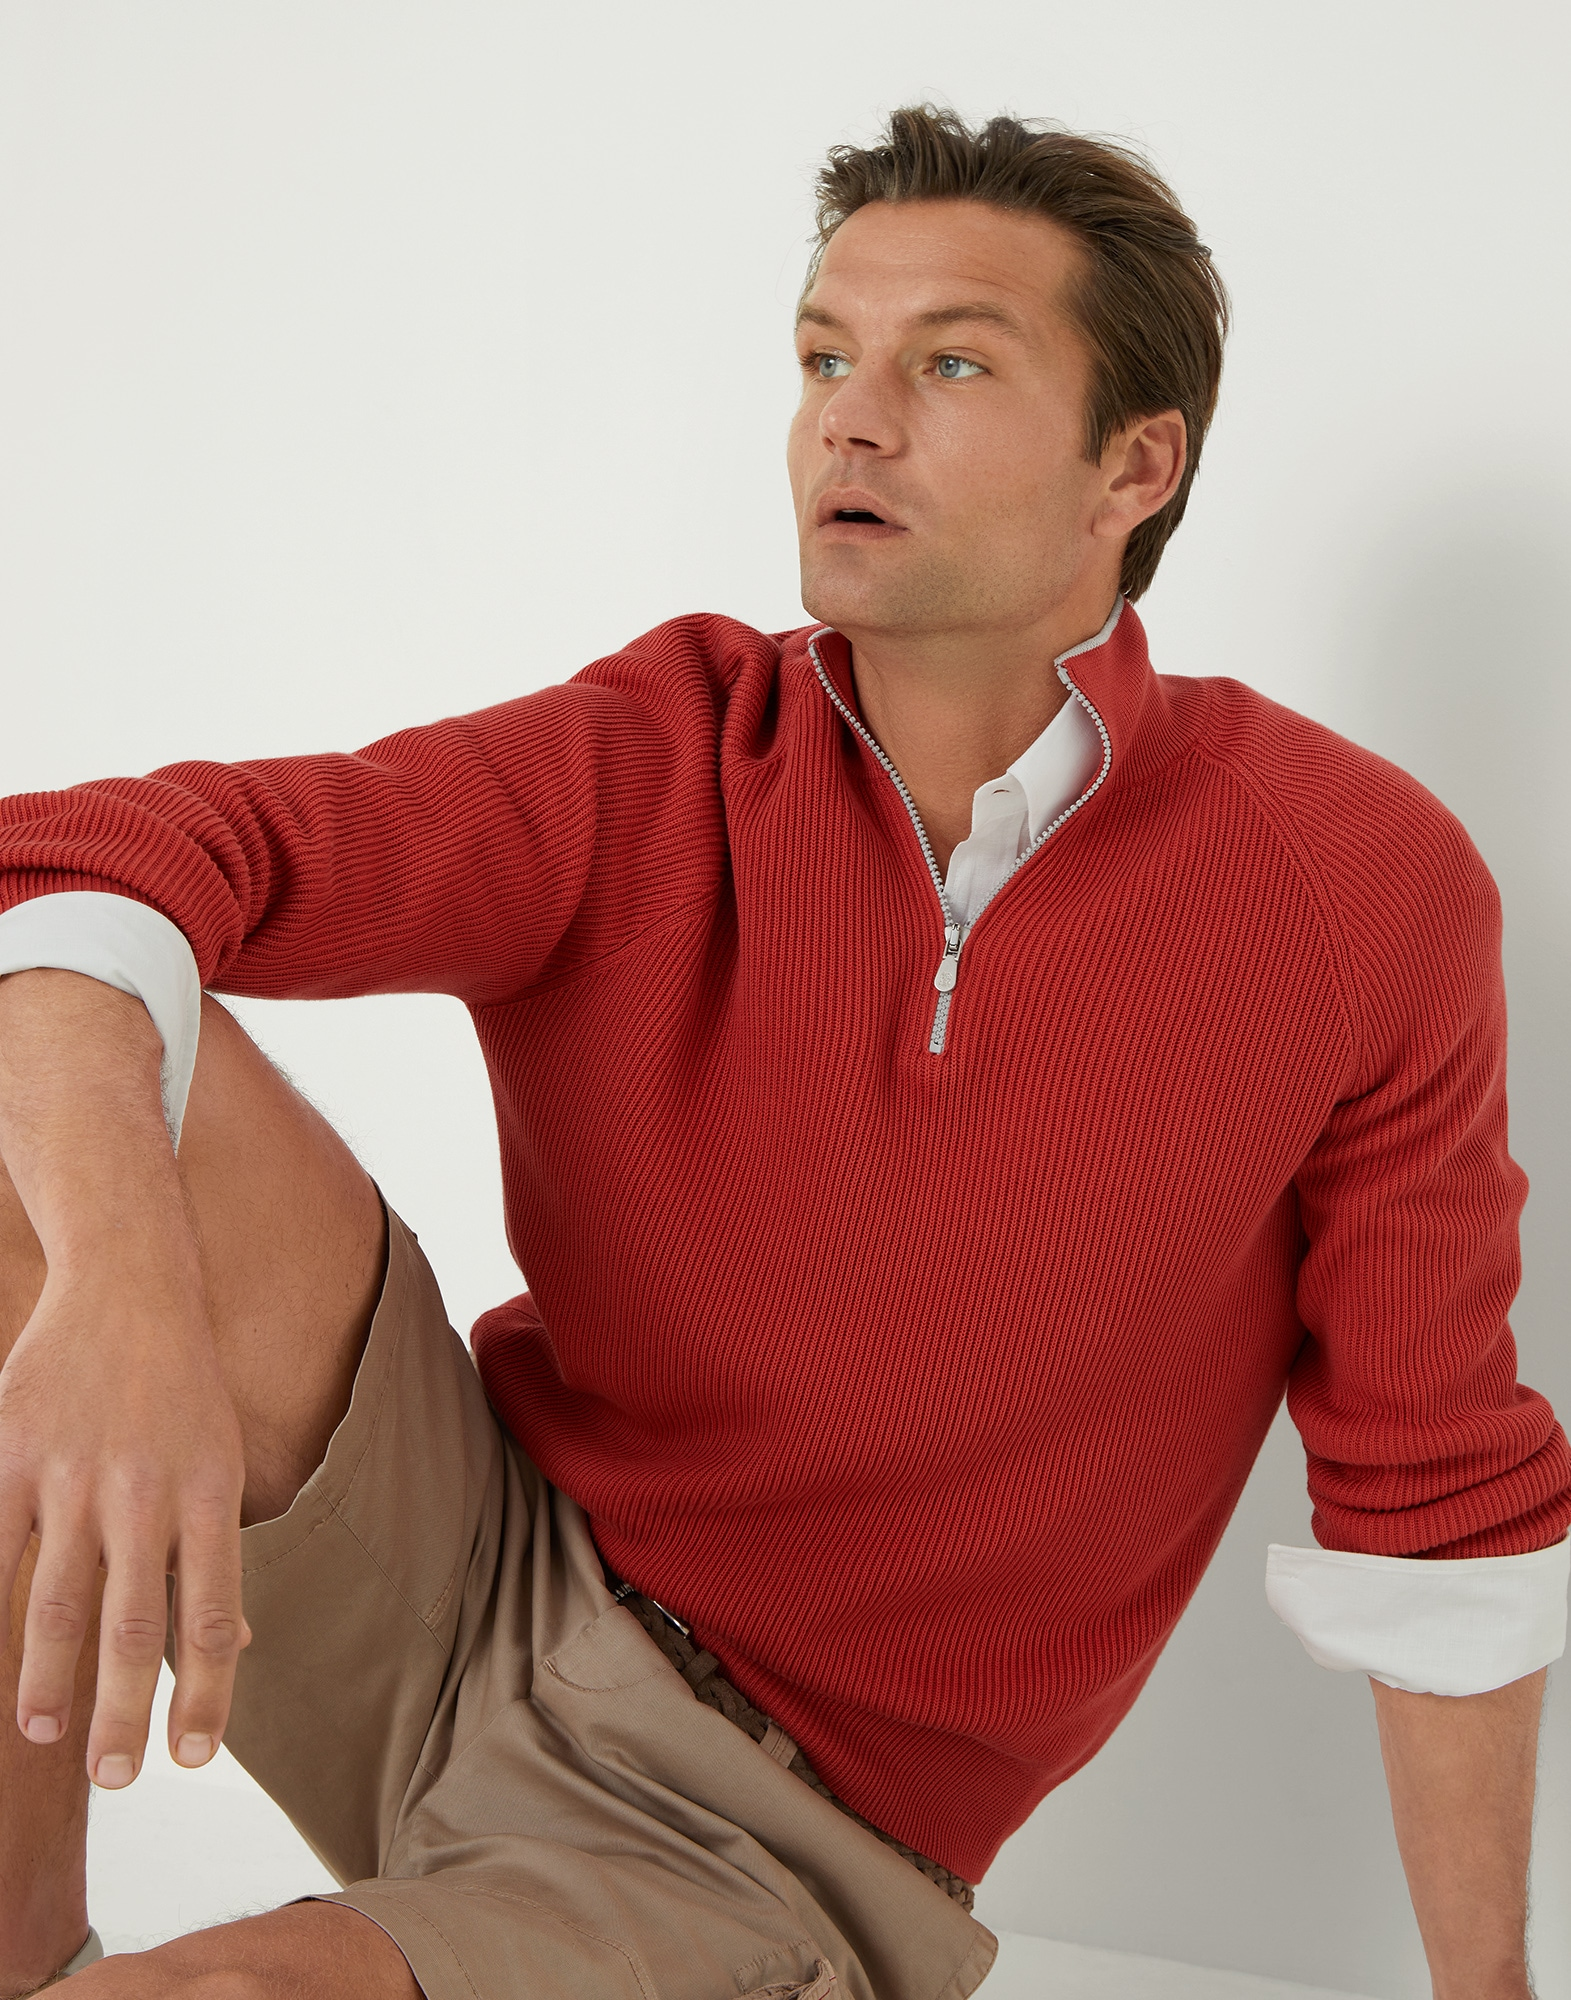 Sweater with zip opening - Editorial